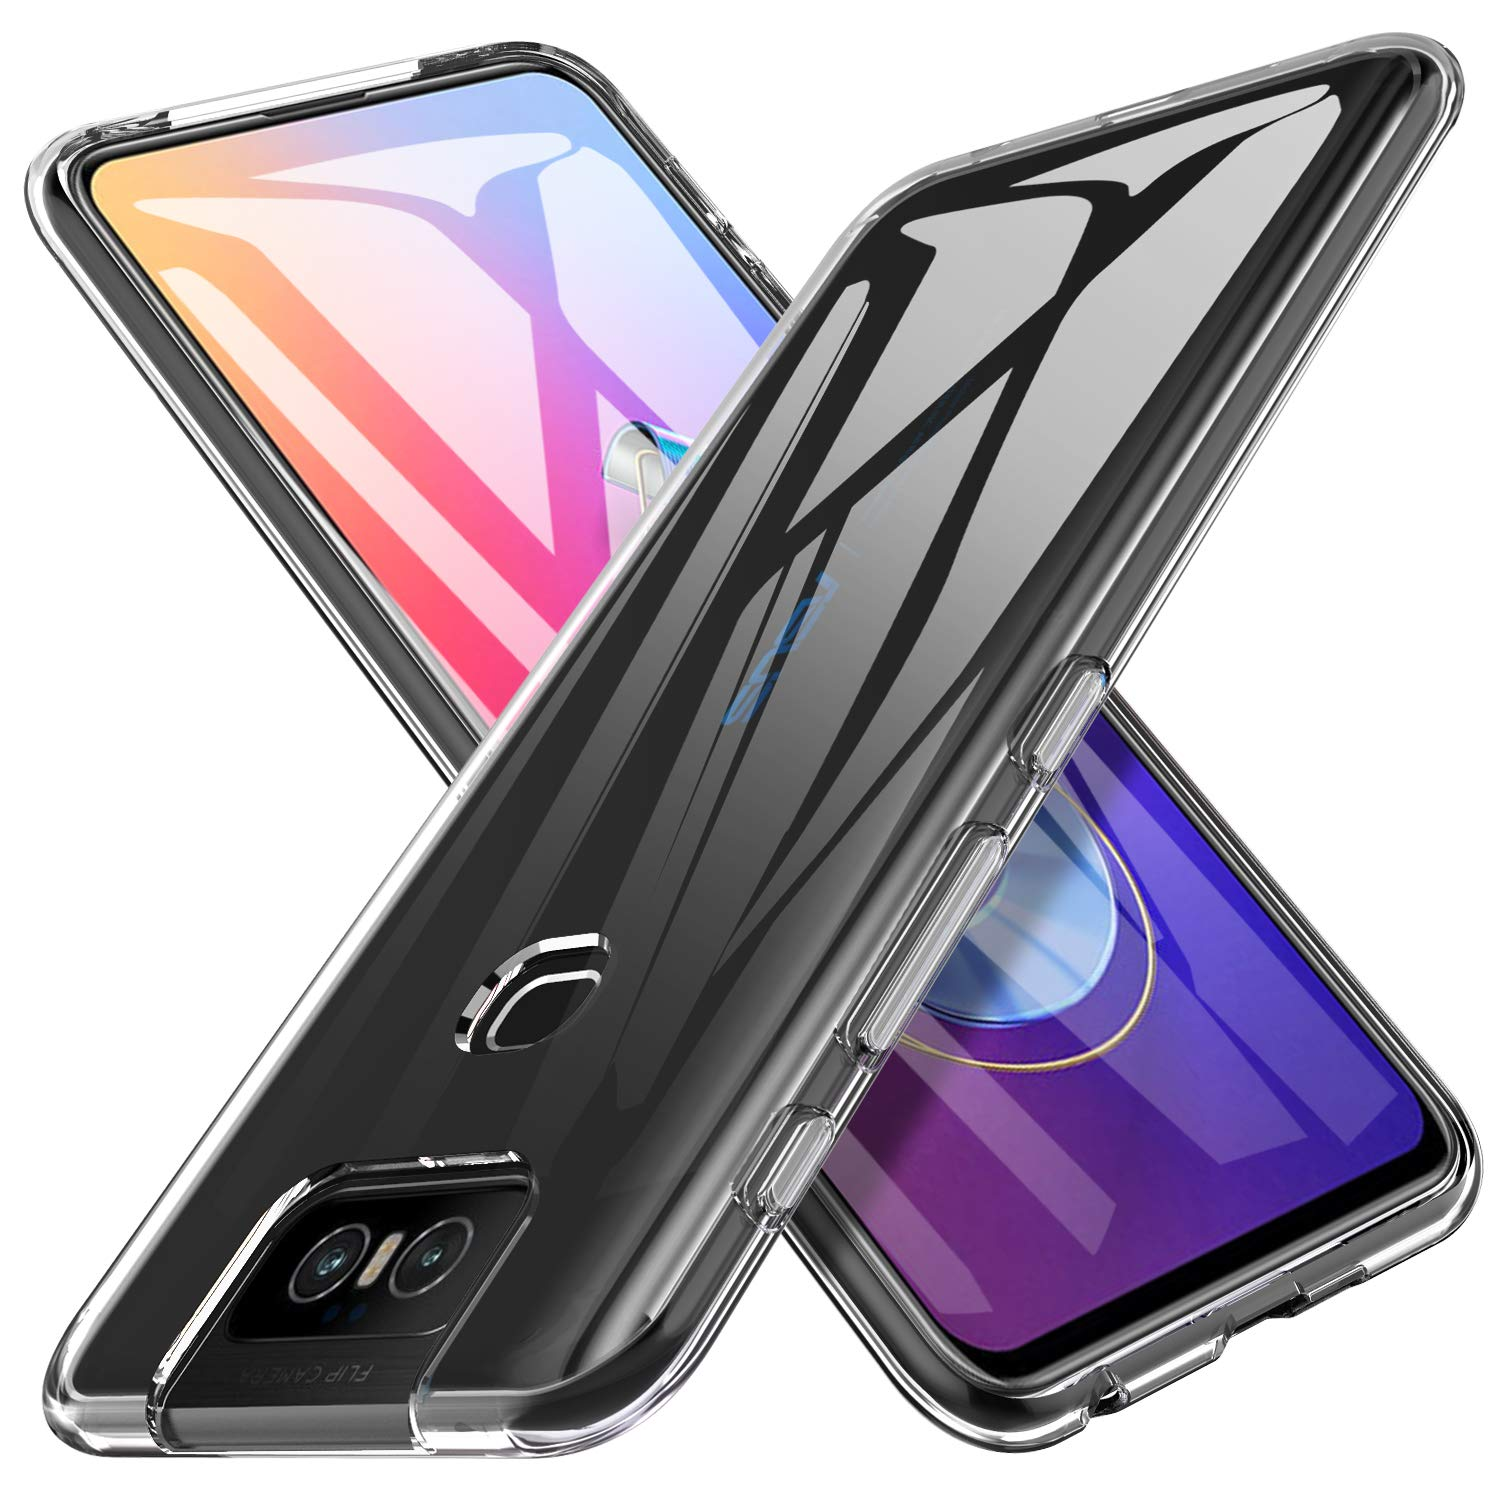 <font><b>Case</b></font> For <font><b>Asus</b></font> <font><b>Zenfone</b></font> <font><b>6</b></font> 6Z <font><b>2019</b></font> <font><b>Case</b></font> Soft TPU Silicone Back Cover For <font><b>Asus</b></font> <font><b>Zenfone</b></font> ZS630kL <font><b>Cases</b></font> Casing image